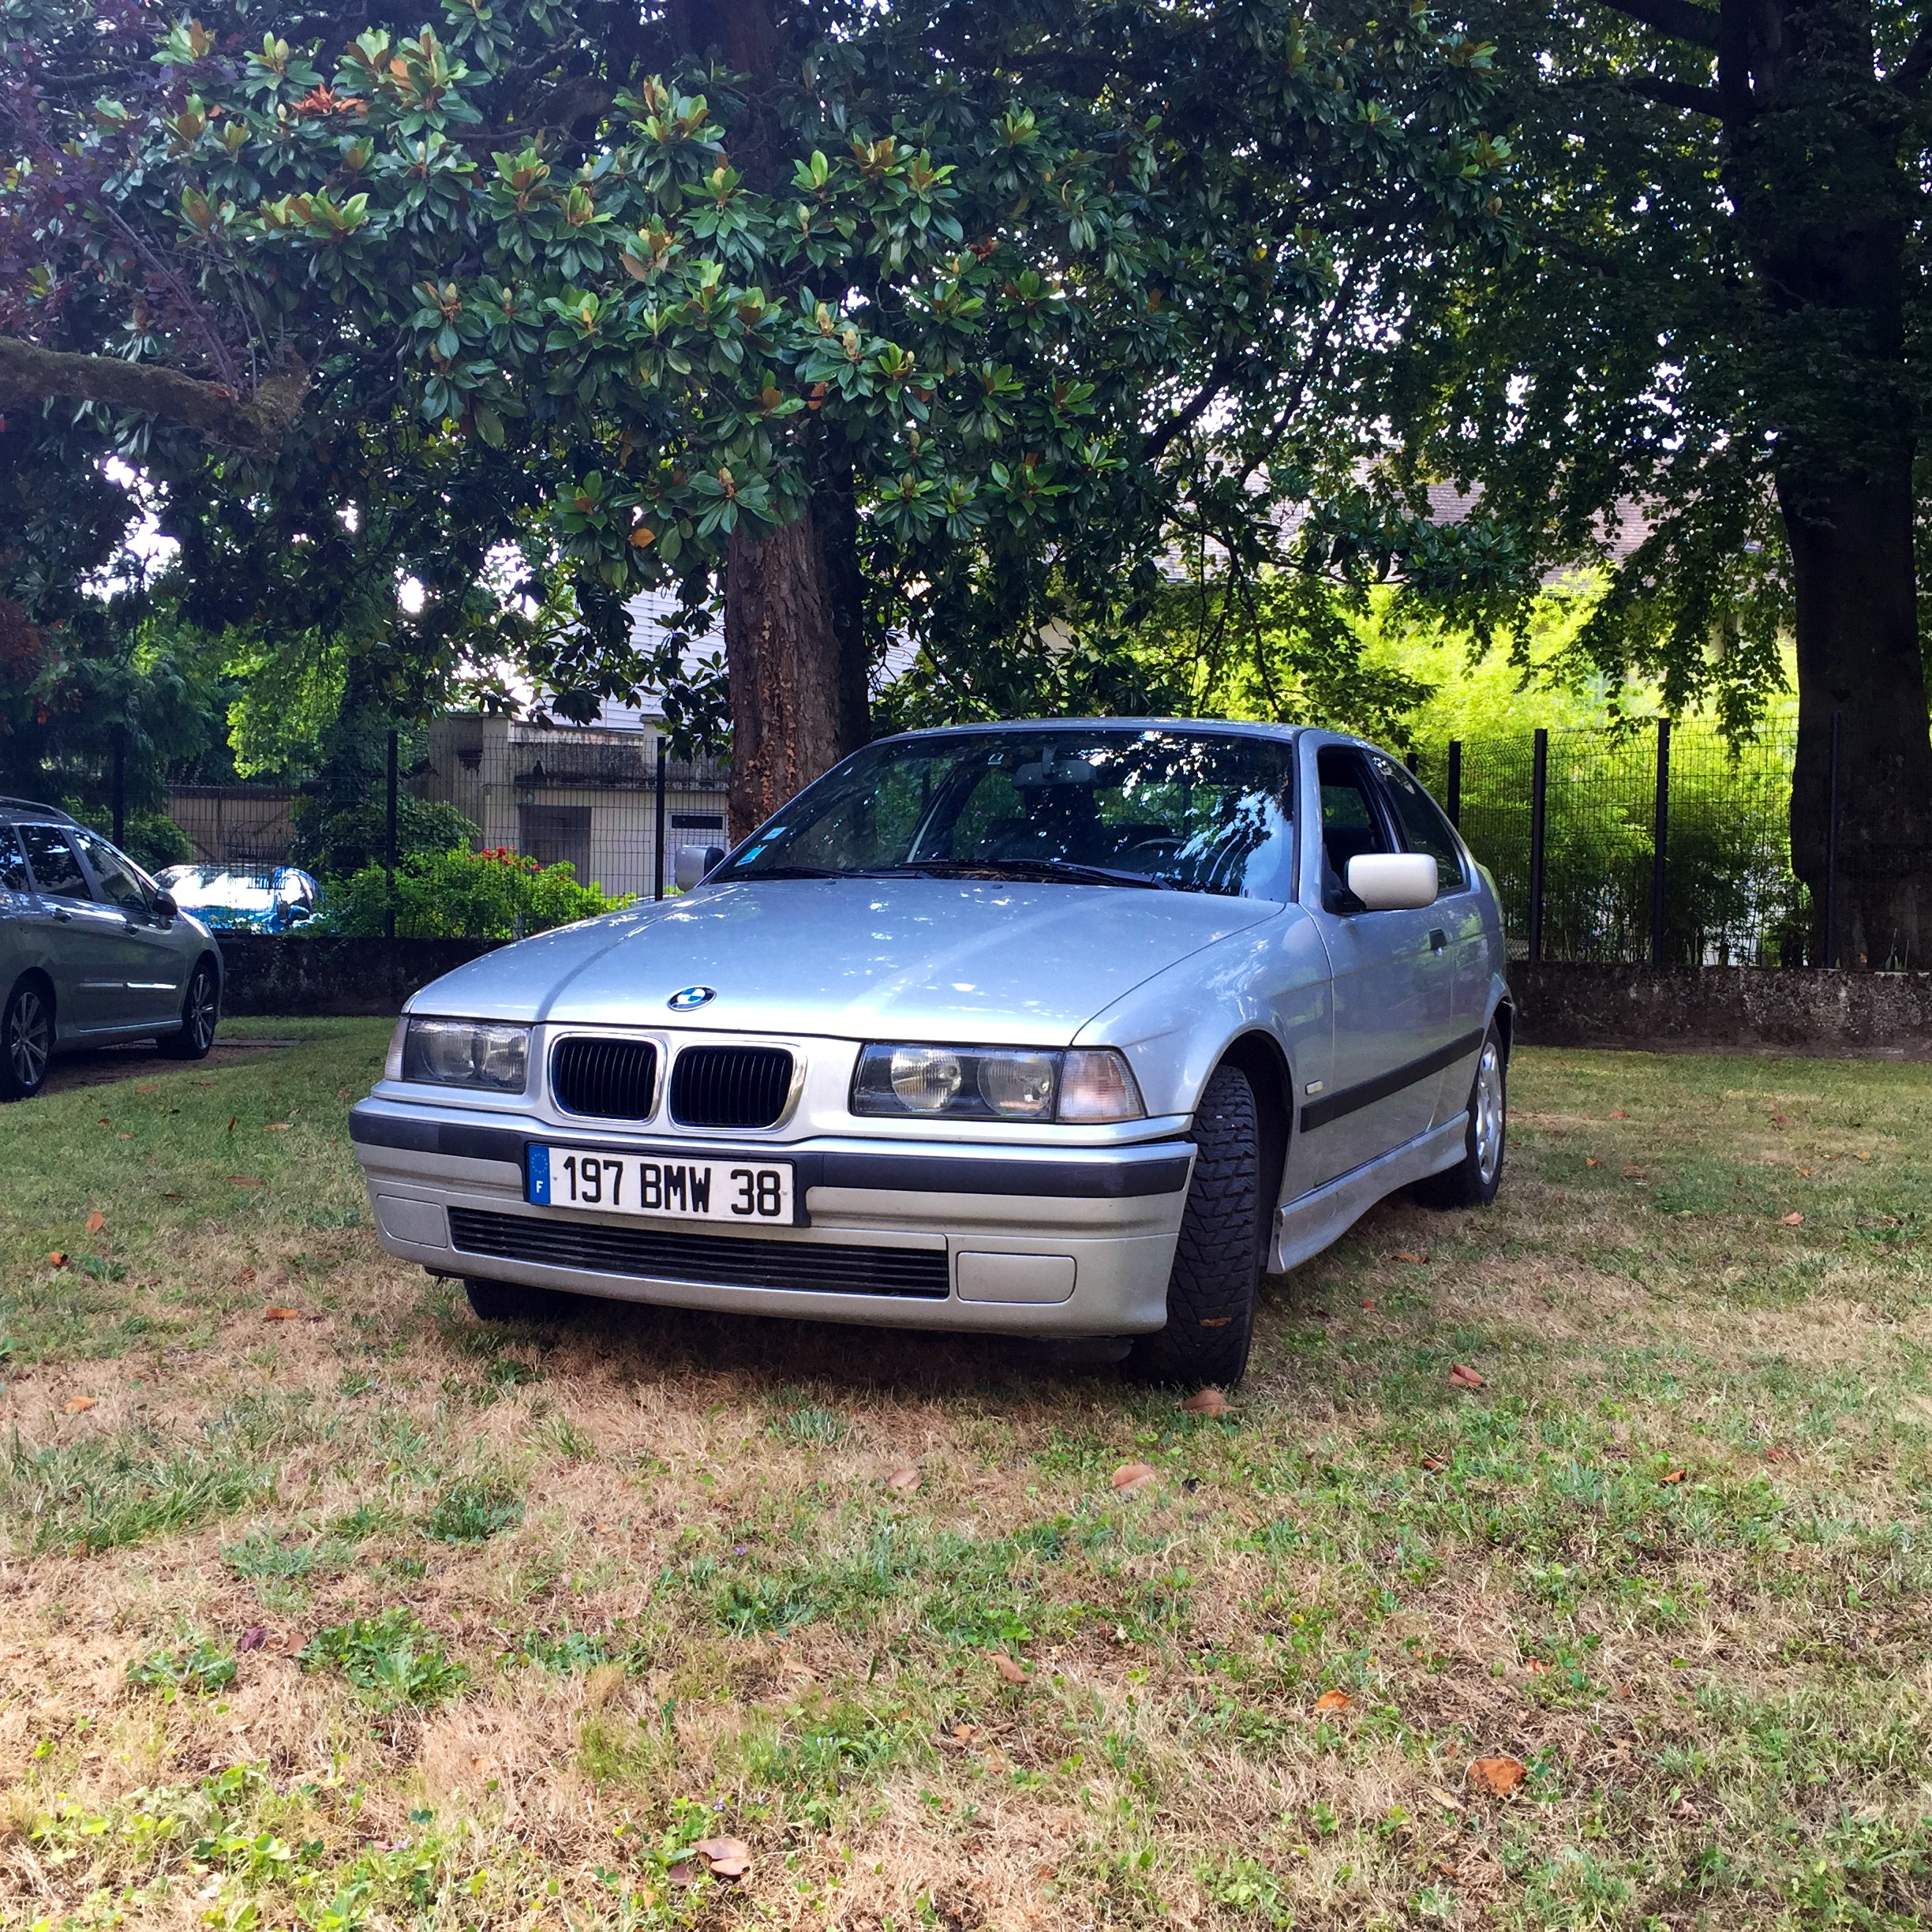 BMW 316, 2001, Essence - Berline Voiron (38)